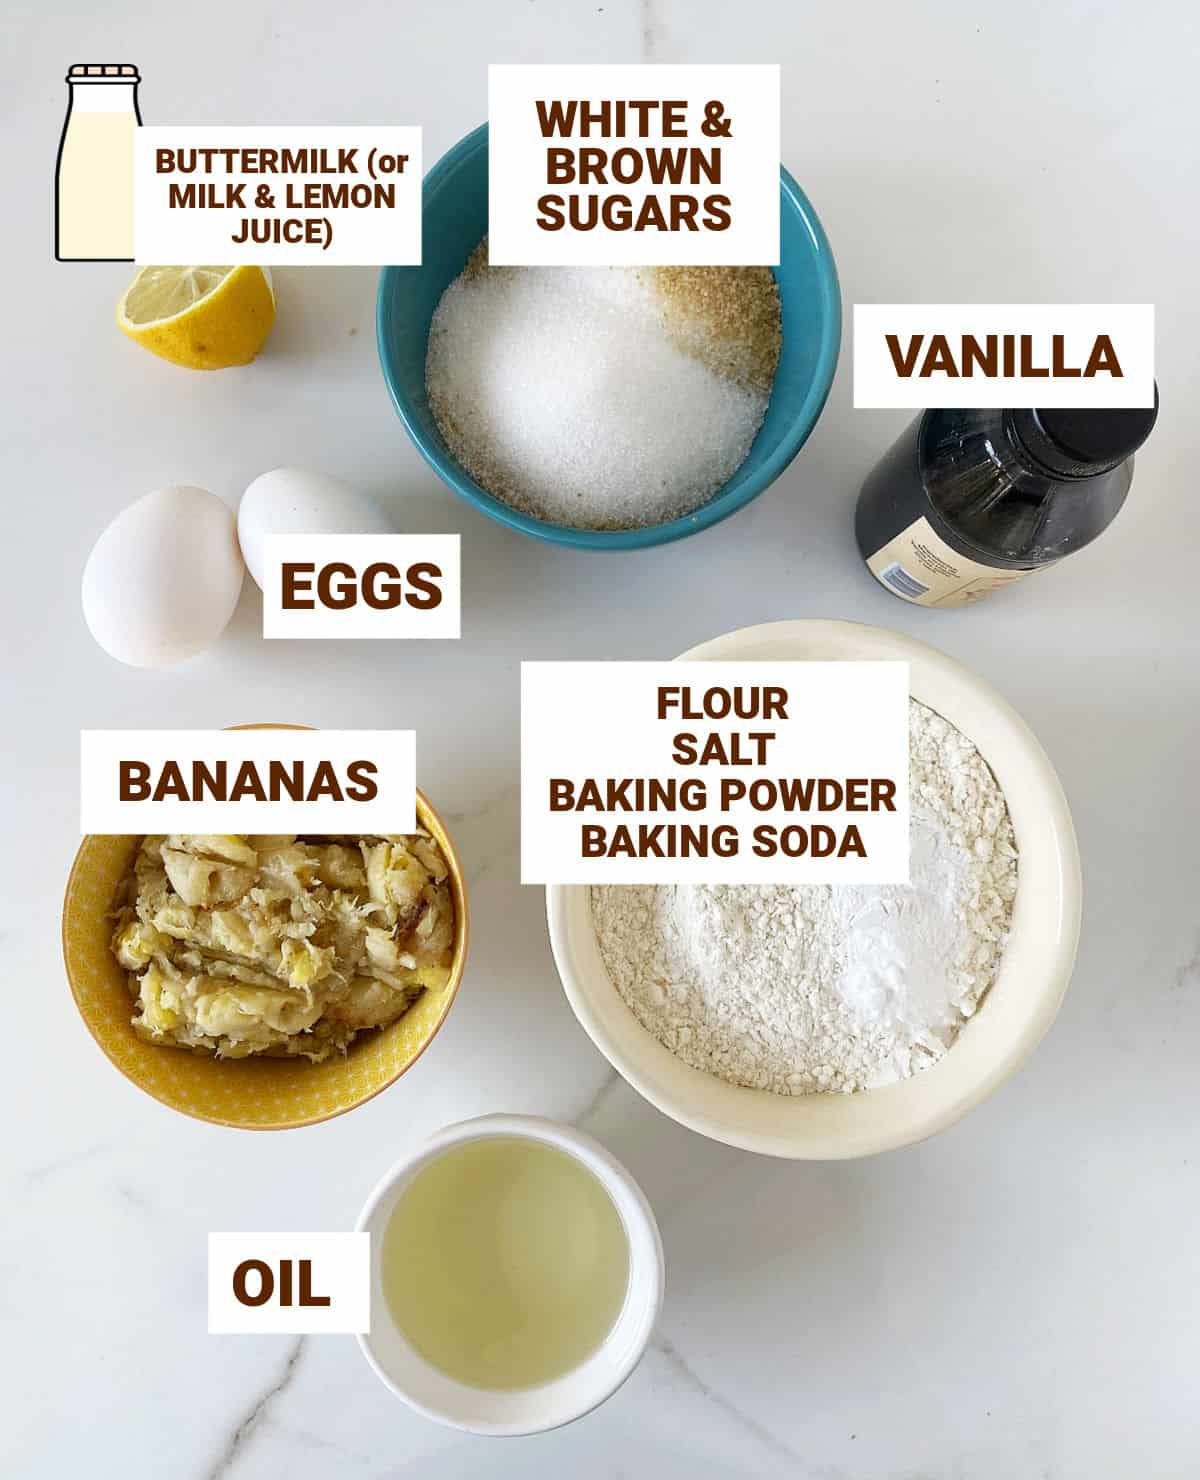 White surface with bowls containing ingredients for banana bread including oil, vanilla, lemon, eggs, sugars, dry ingredients